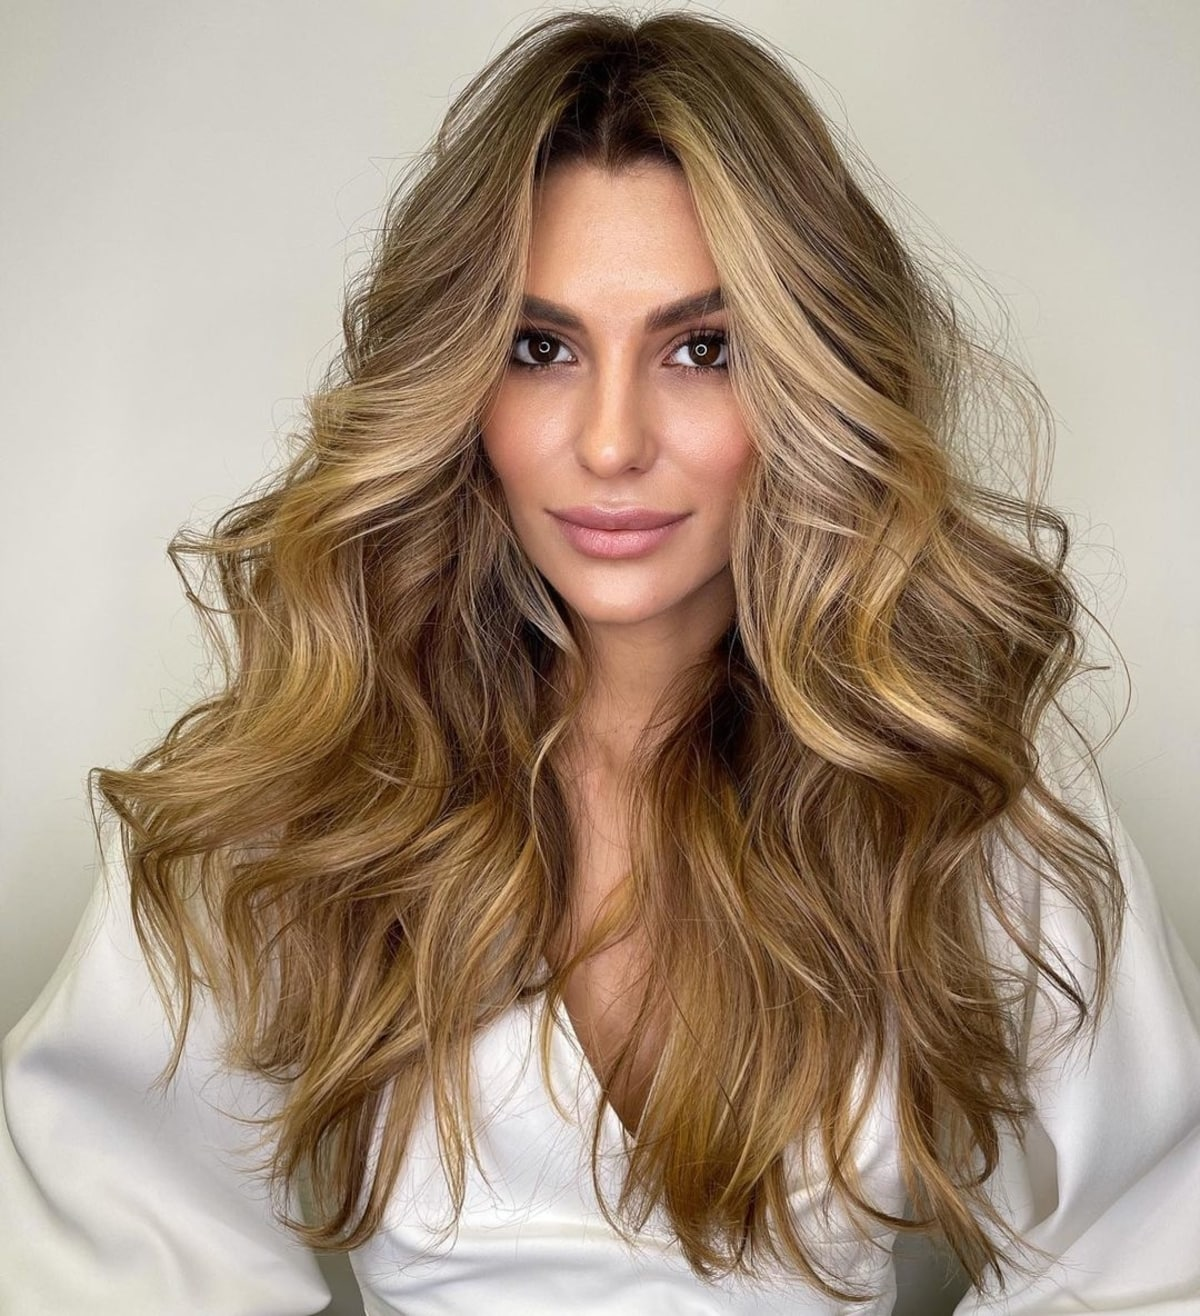 21 Middle Part Hairstyles That Will Flatter Anyone